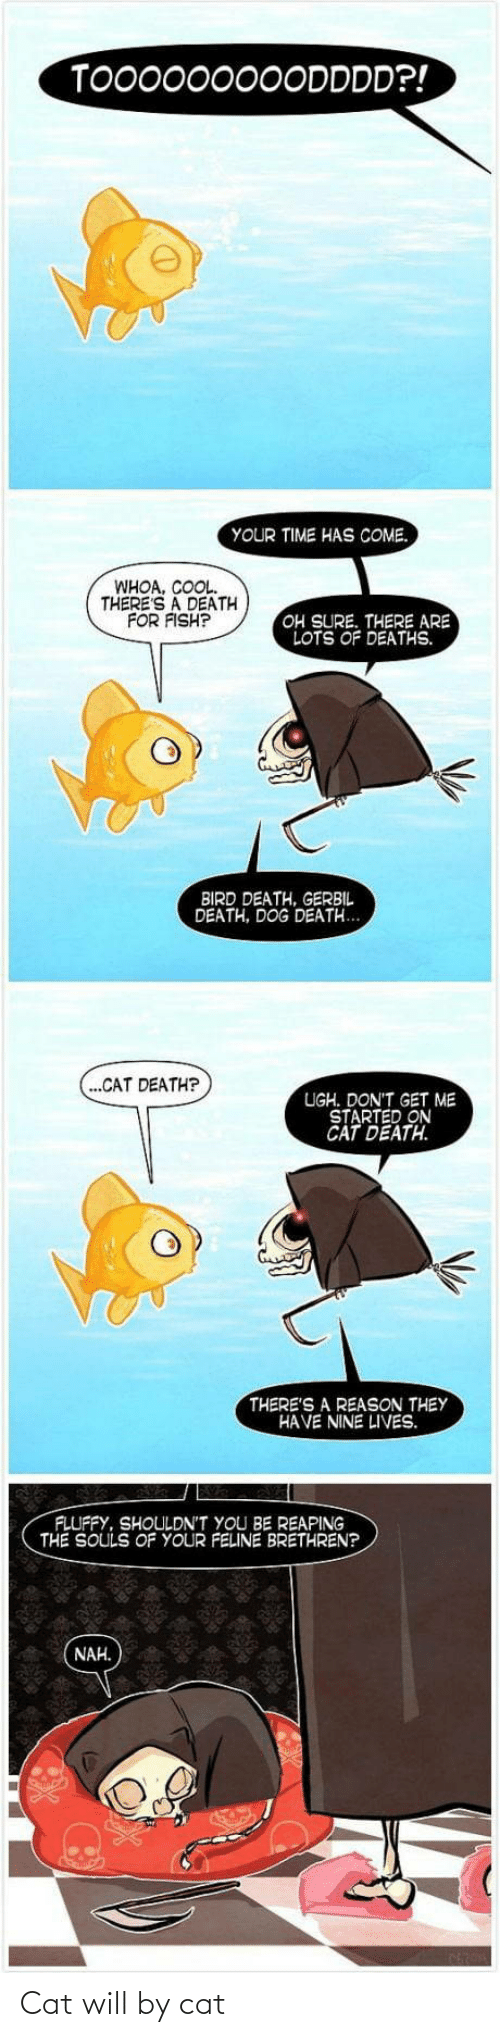 lots: TO00000000DDDD?!  YOUR TIME HAS COME.  WHOA, COOL.  THERE'S A DEATH  FOR FISH?  OH SURE. THERE ARE  LOTS OF DEATHS.  BIRD DEATH, GERBIL  DEATH, DOG DEATH...  (...CAT DEATH?  UGH. DON'T GET ME  STARTED ON  CAT DEATH.  THERE'S A REASON THEY  HAVE NINE LIVES.  FLUFFY, SHOULDN'T YOU BE REAPING  THE SOULS OF YOUR FELINE BRETHREN?  NAH. Cat will by cat